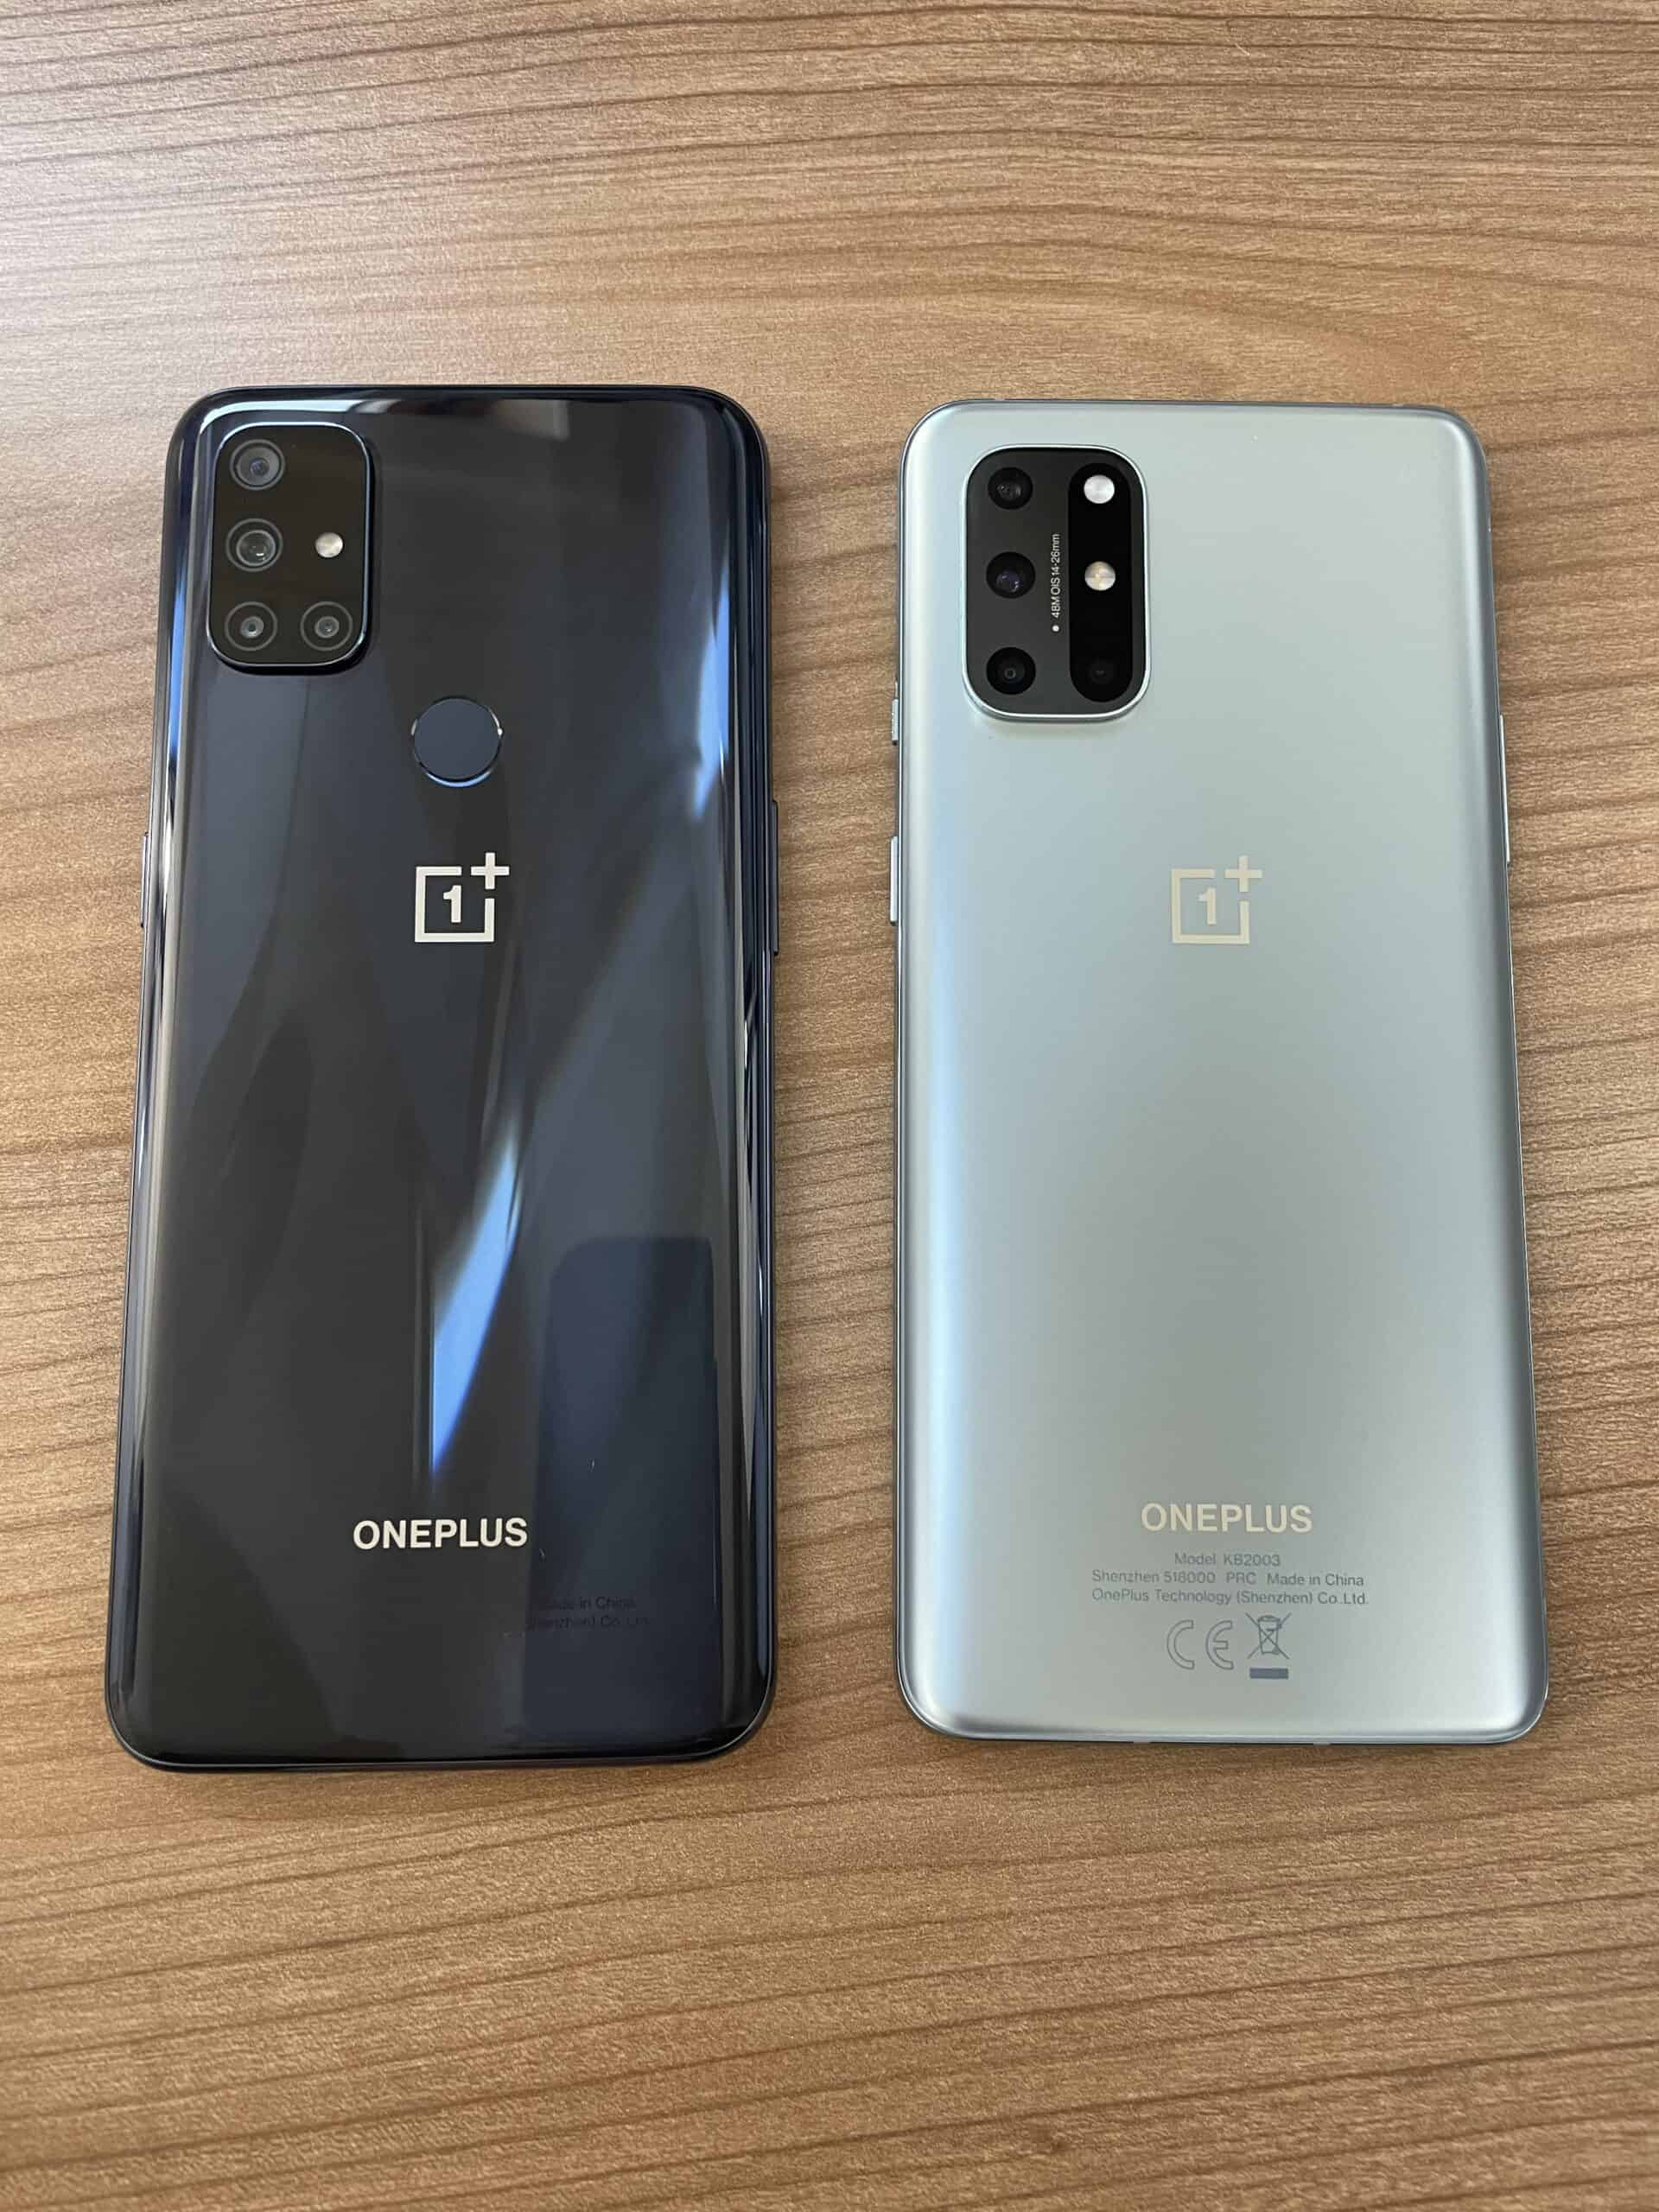 OnePlus N10 5G review